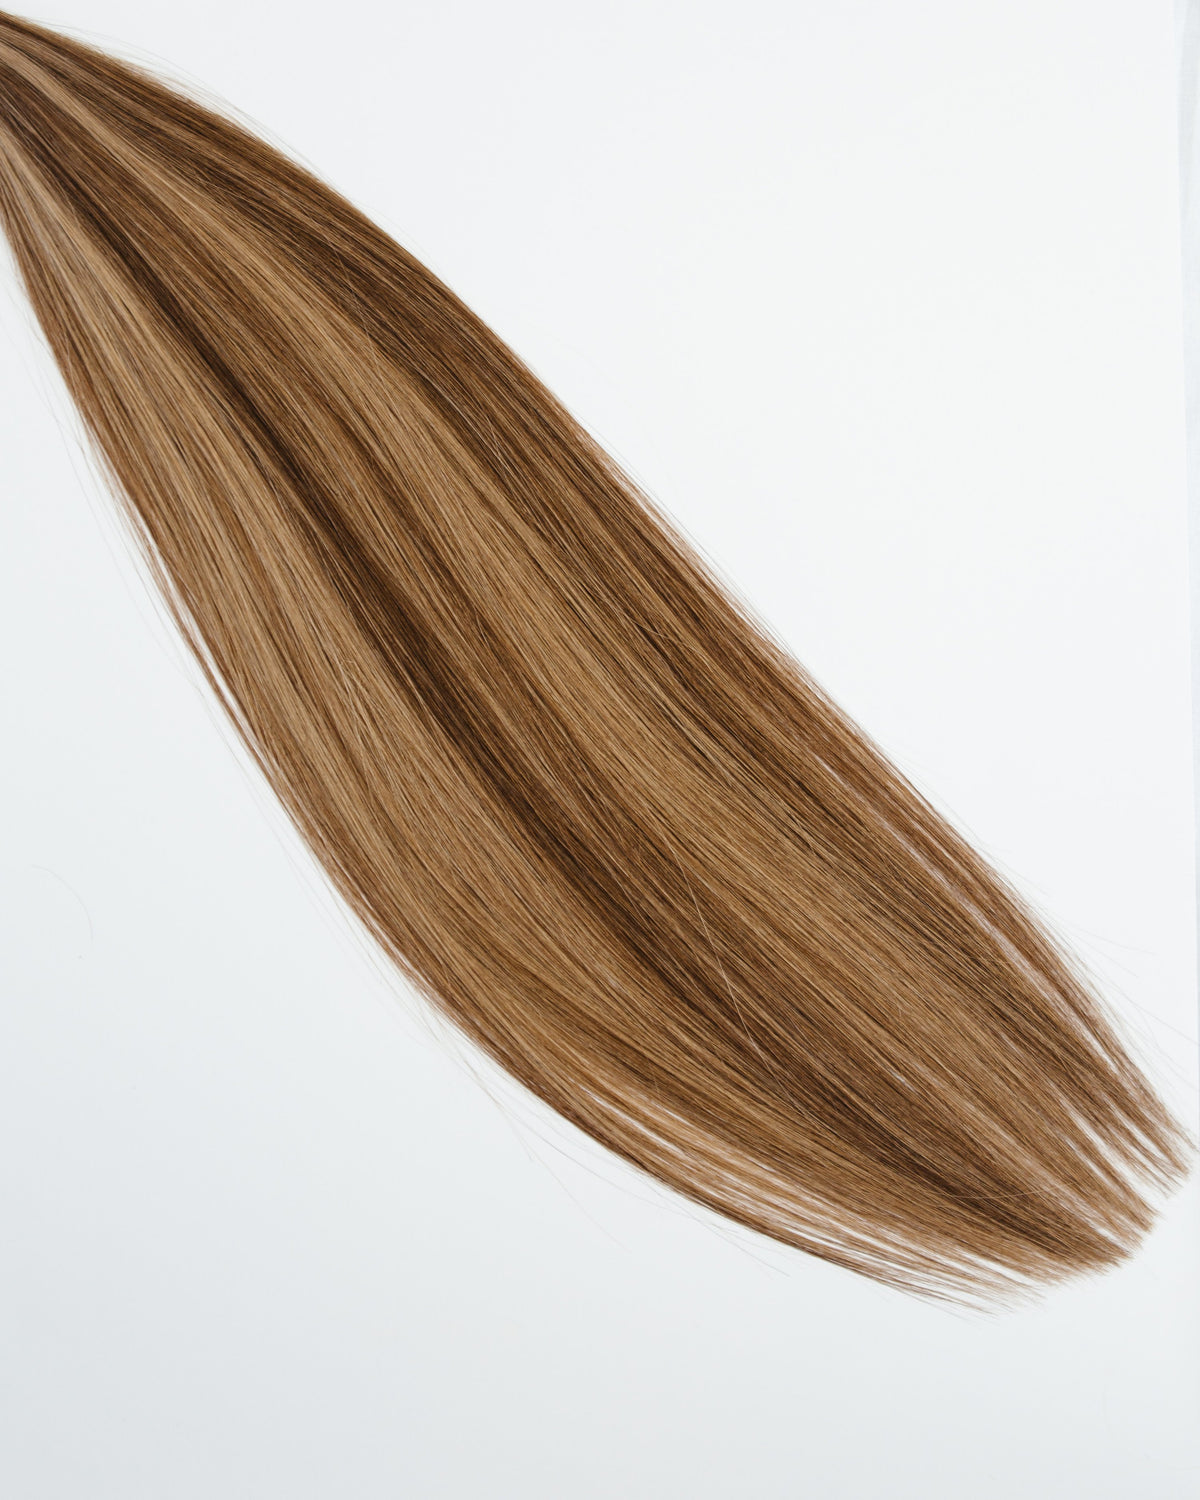 Machine_Sewn_Weft - Laced Hair Machine Sewn Weft Extensions Dimensional #4/8 (Cappuccino)